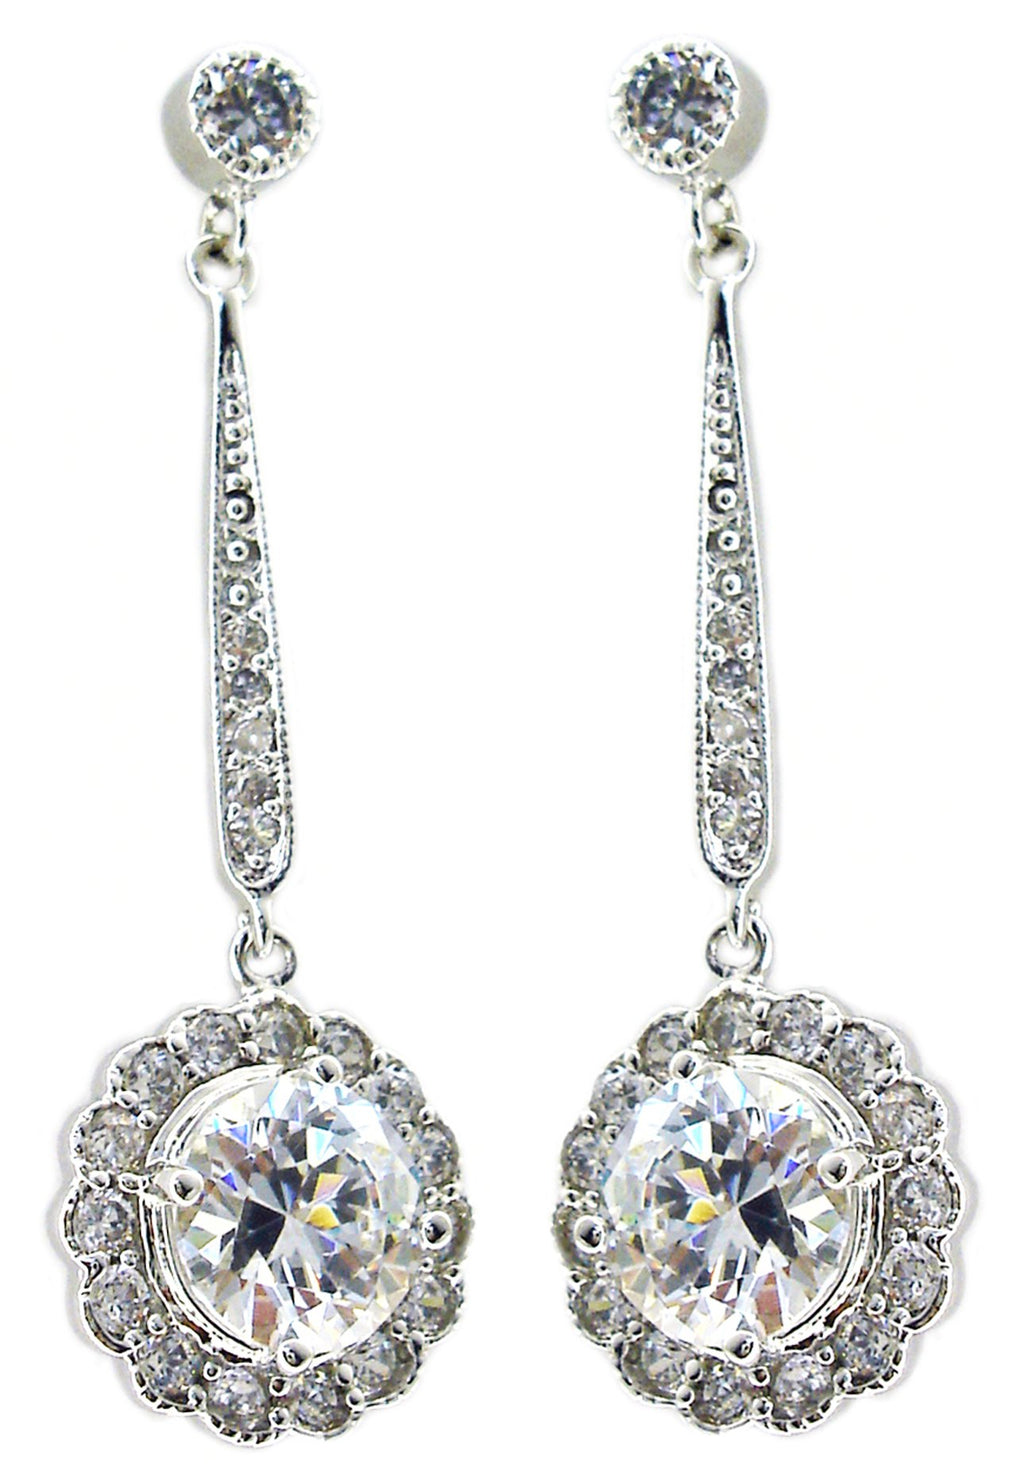 Earring Rd Bezel Cz Ov Bar with Flower Drop